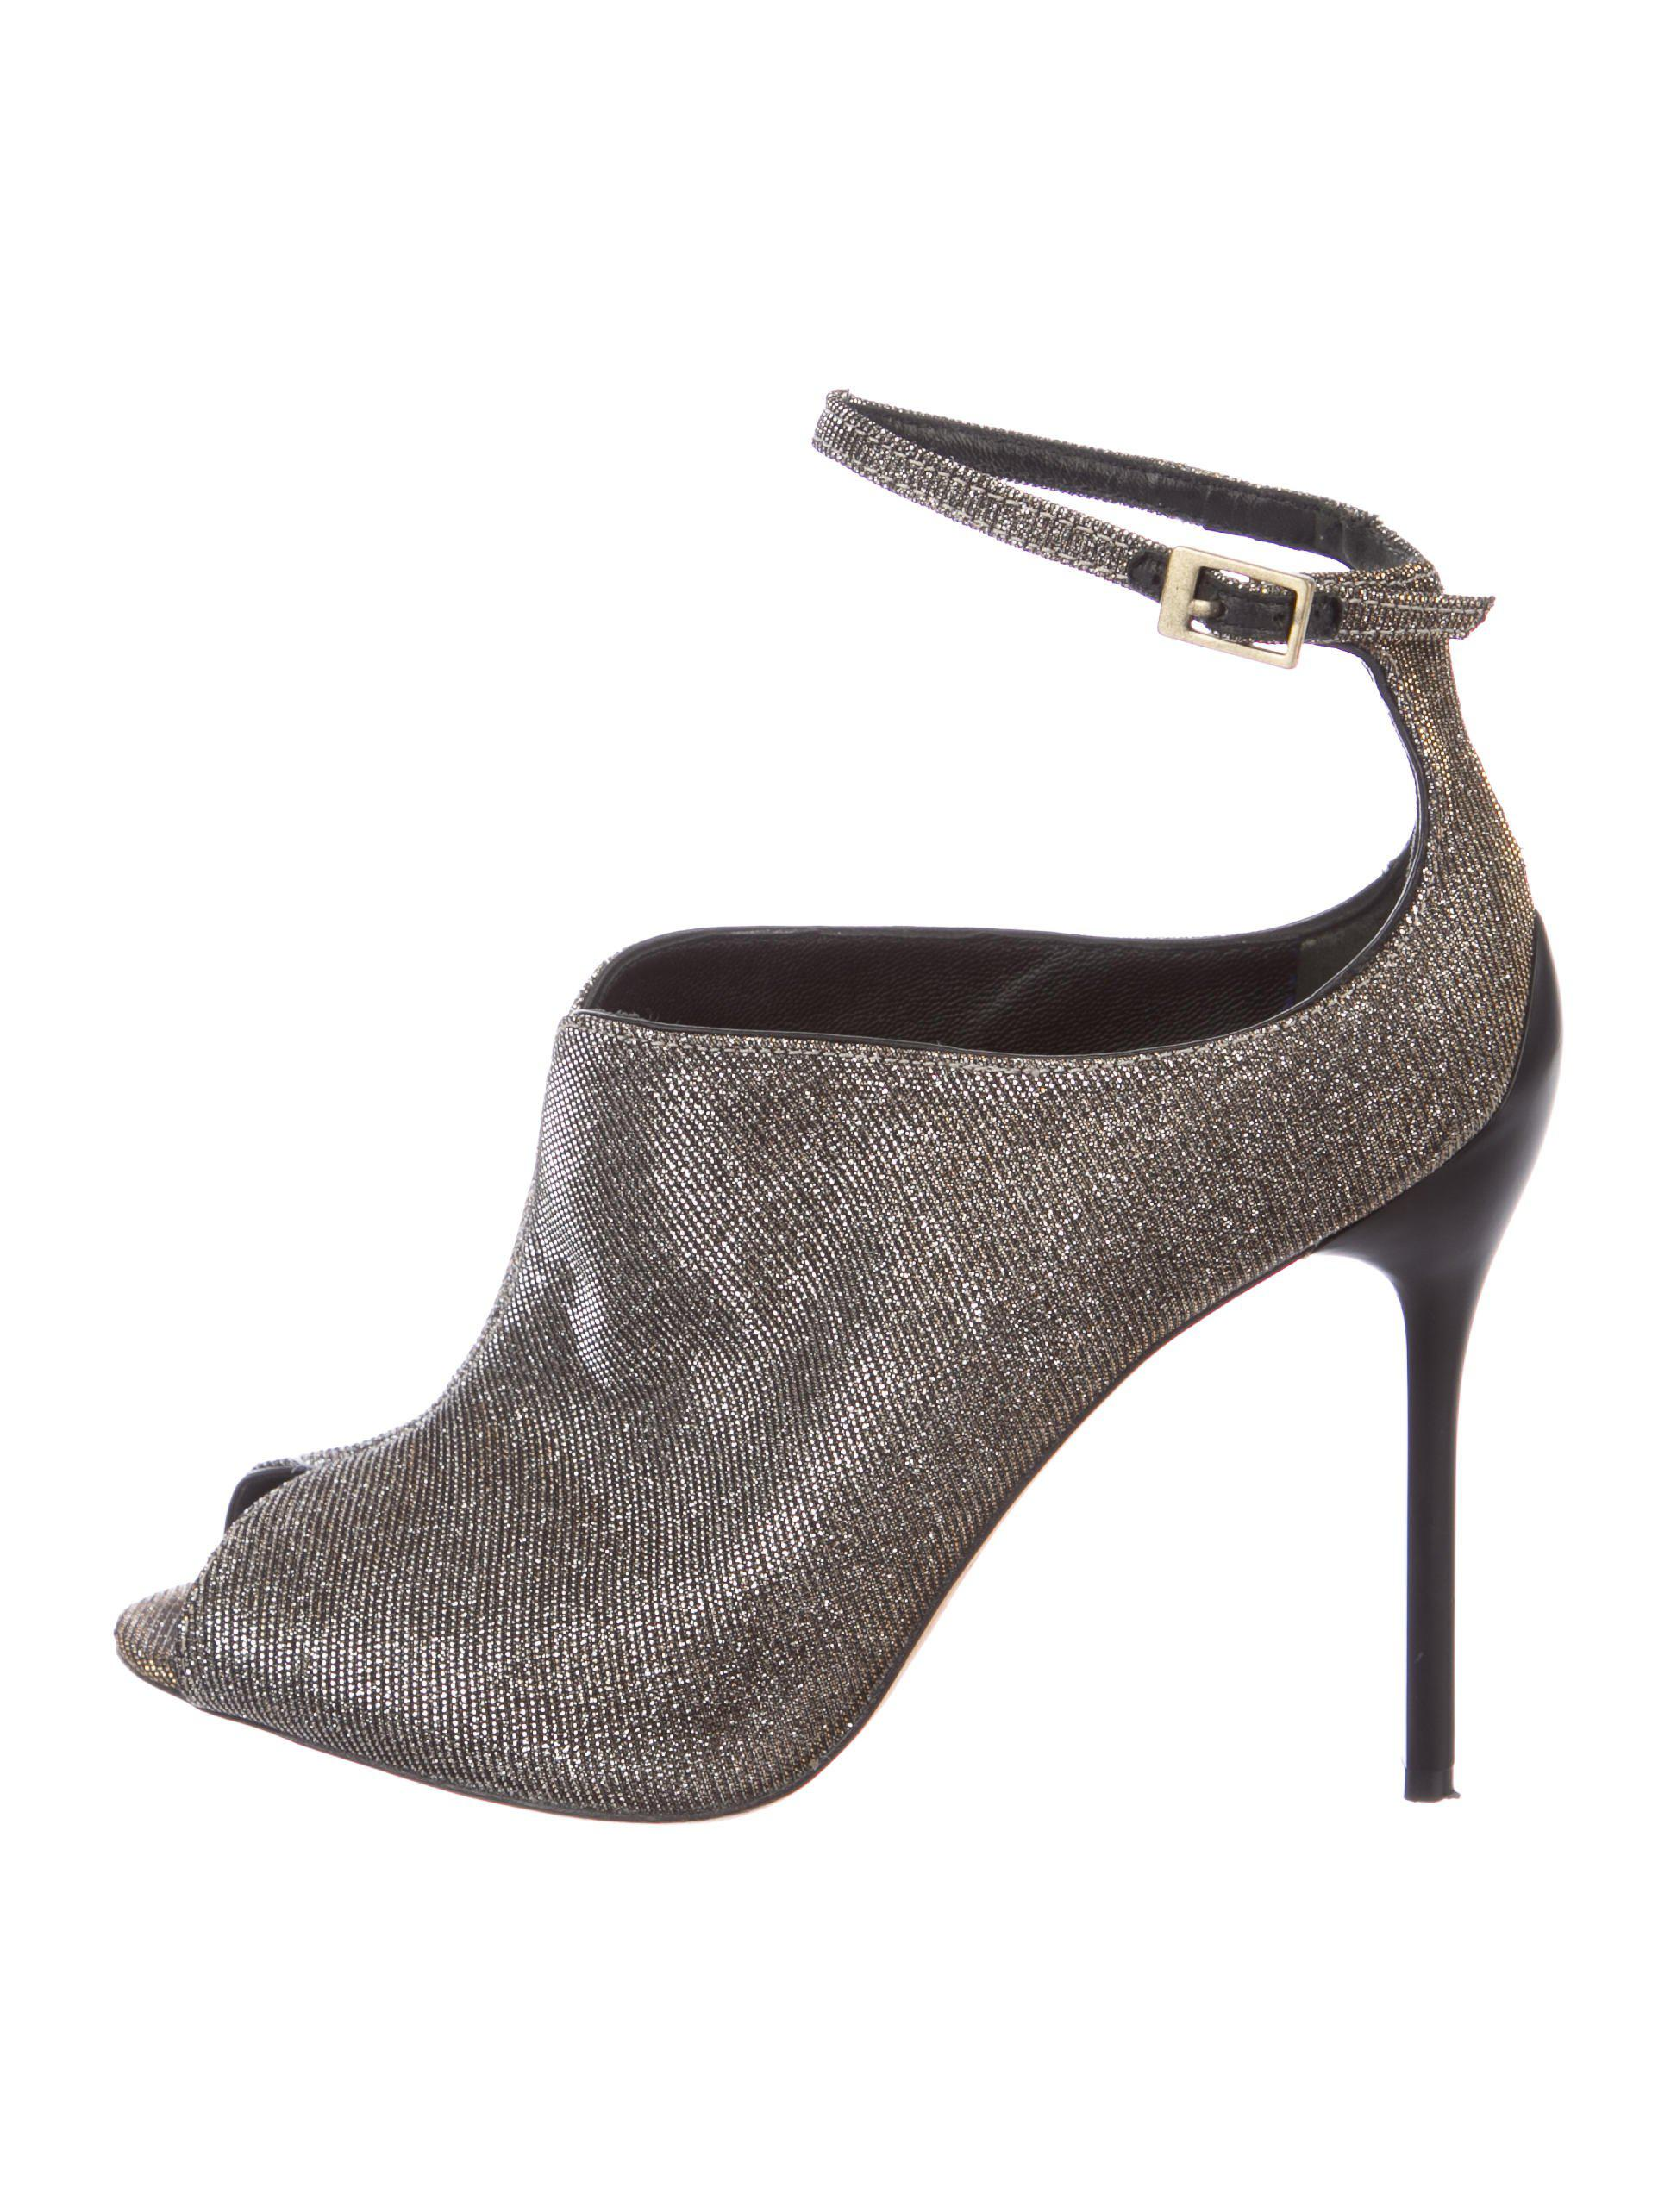 B Brian Atwood Metallic Peep-Toe Booties tumblr sale online discount best place with credit card cheap price jnh87